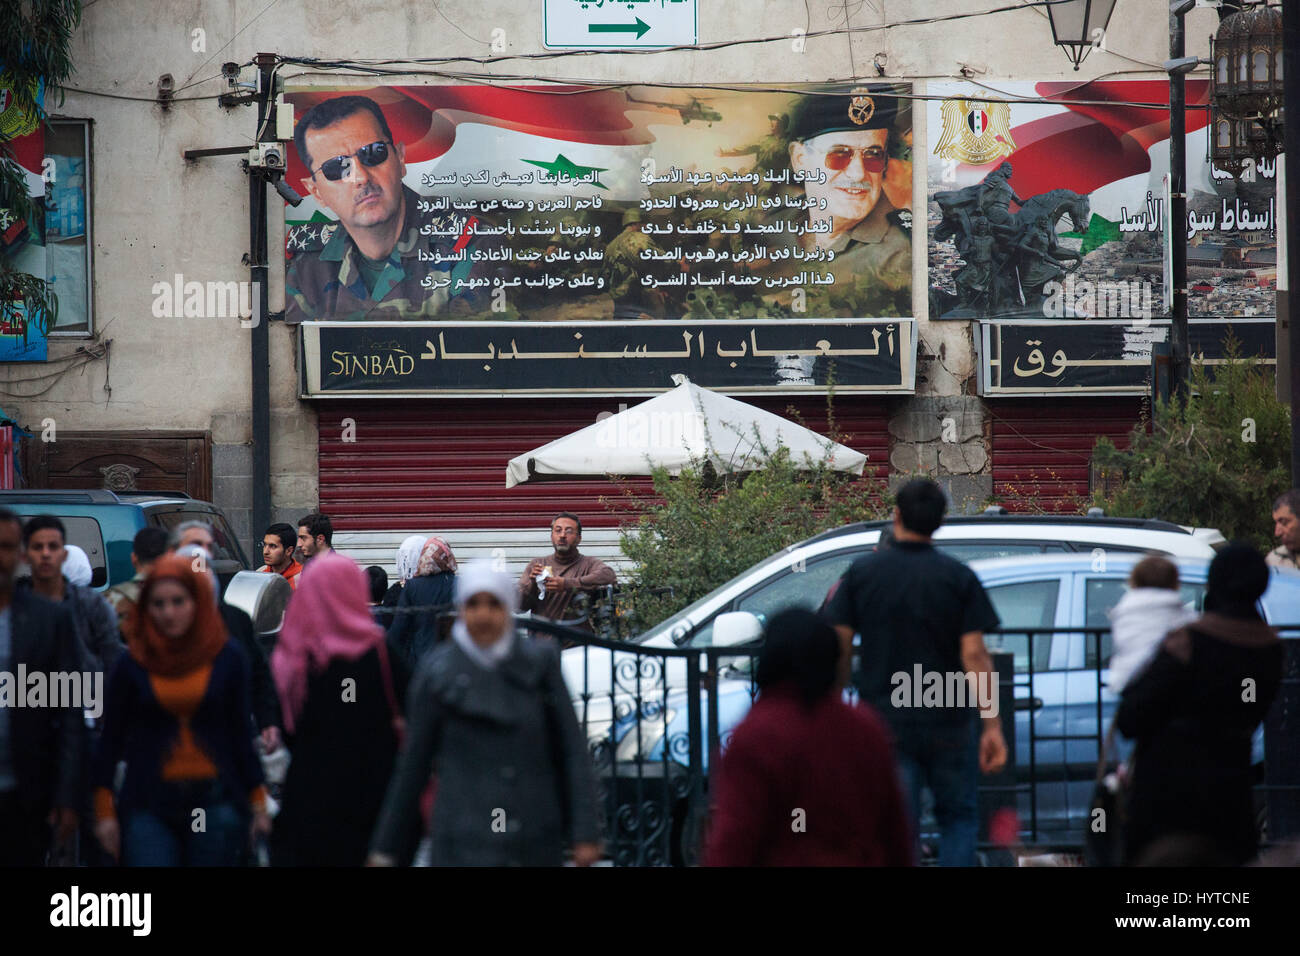 Portraits of Bashar al-Assad on street - Stock Image